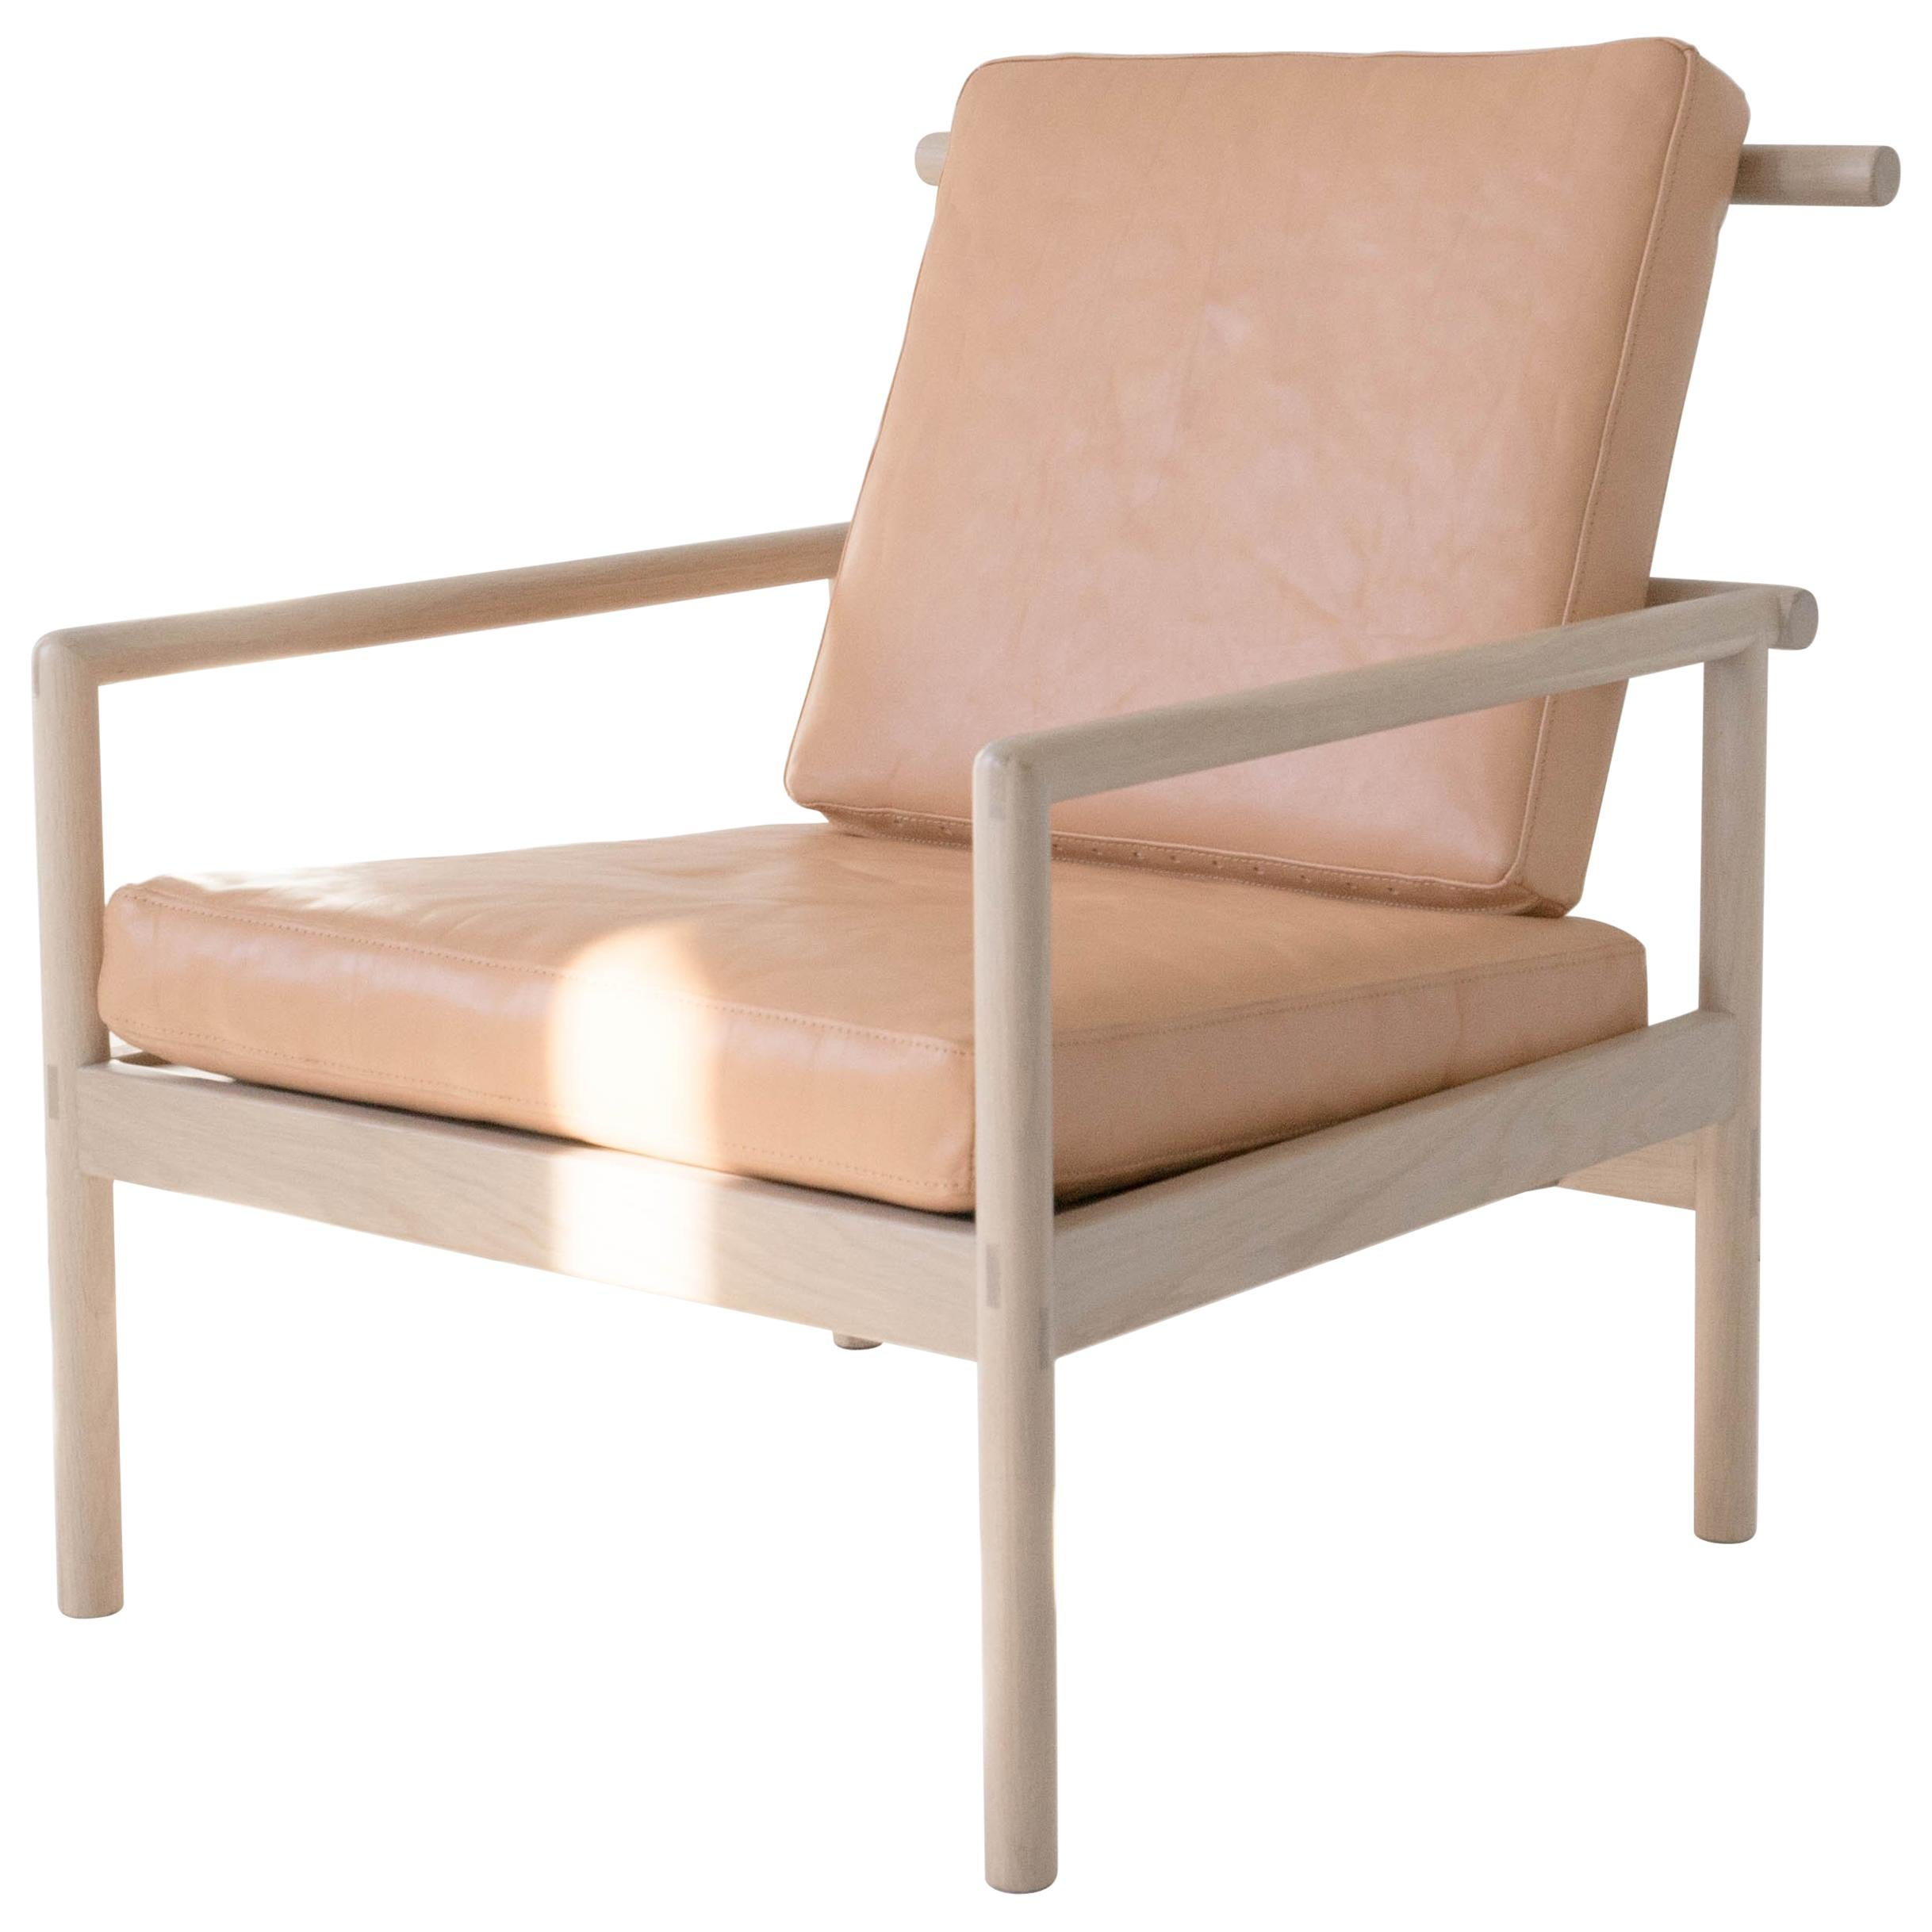 Etonnant Ten Chair, Nude Minimalist / Midcentury Lounge Chair In Wood, Leather